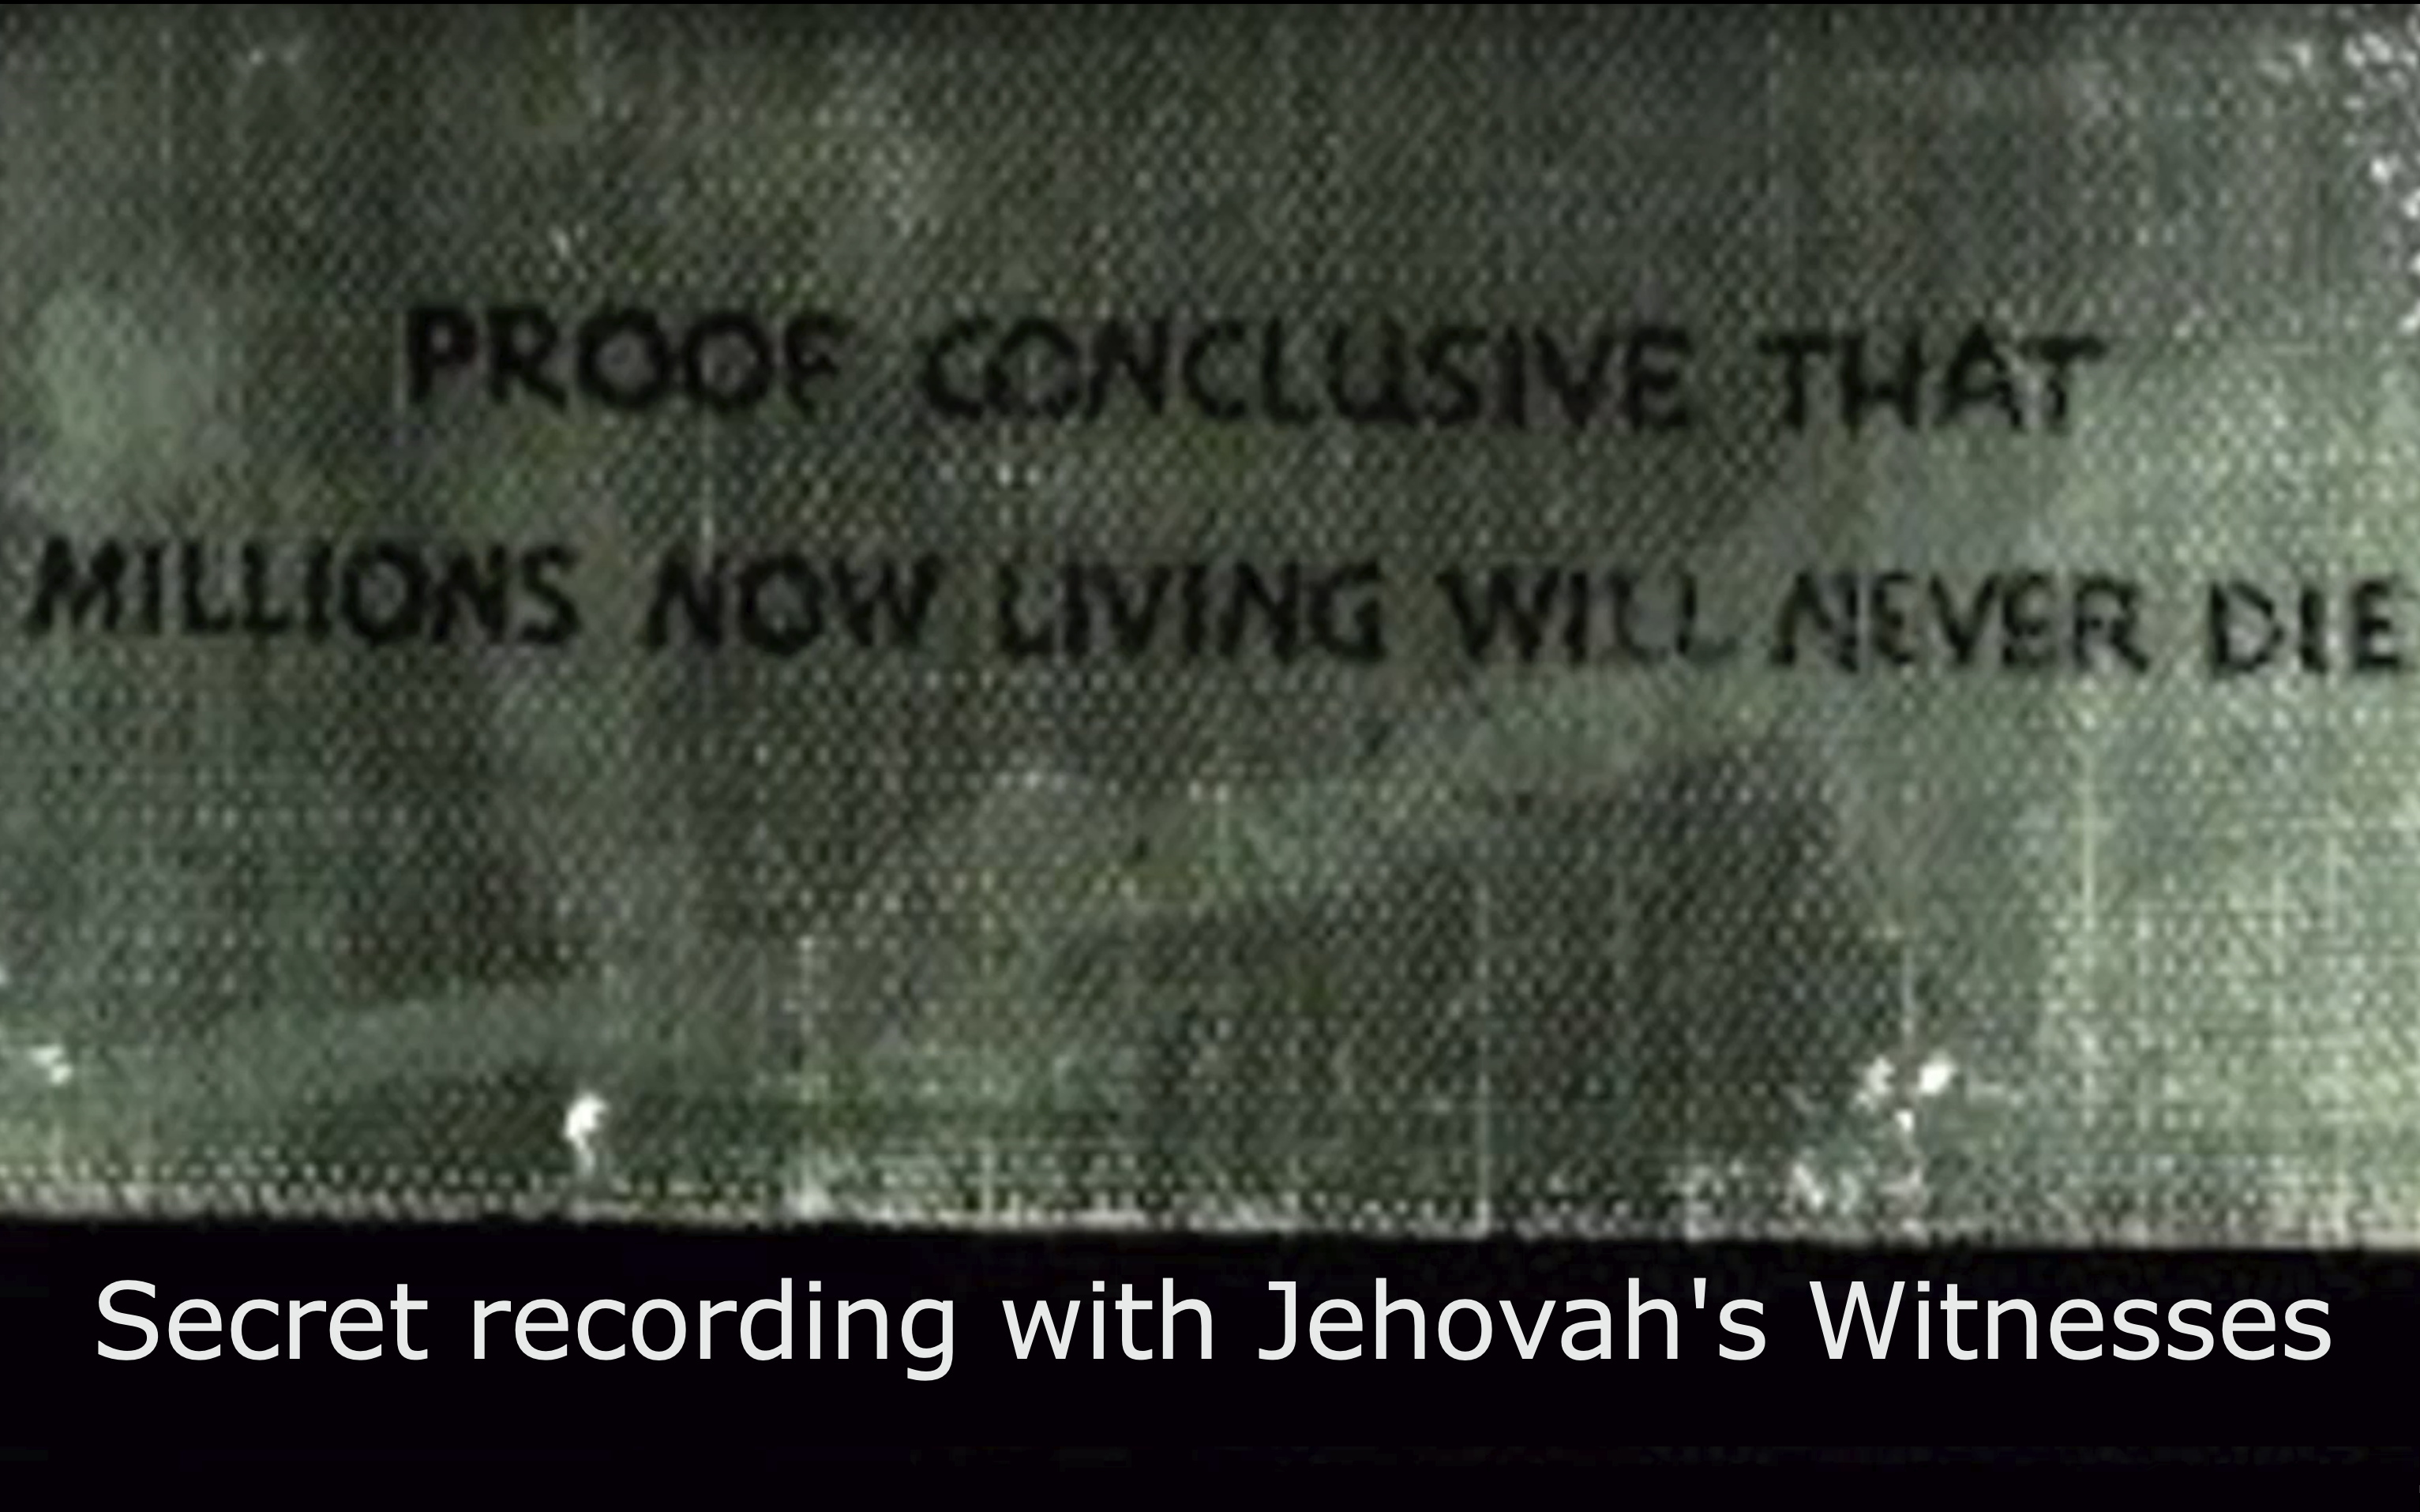 Jehovah Witness book: Millions now living will never die, secret recording graphic